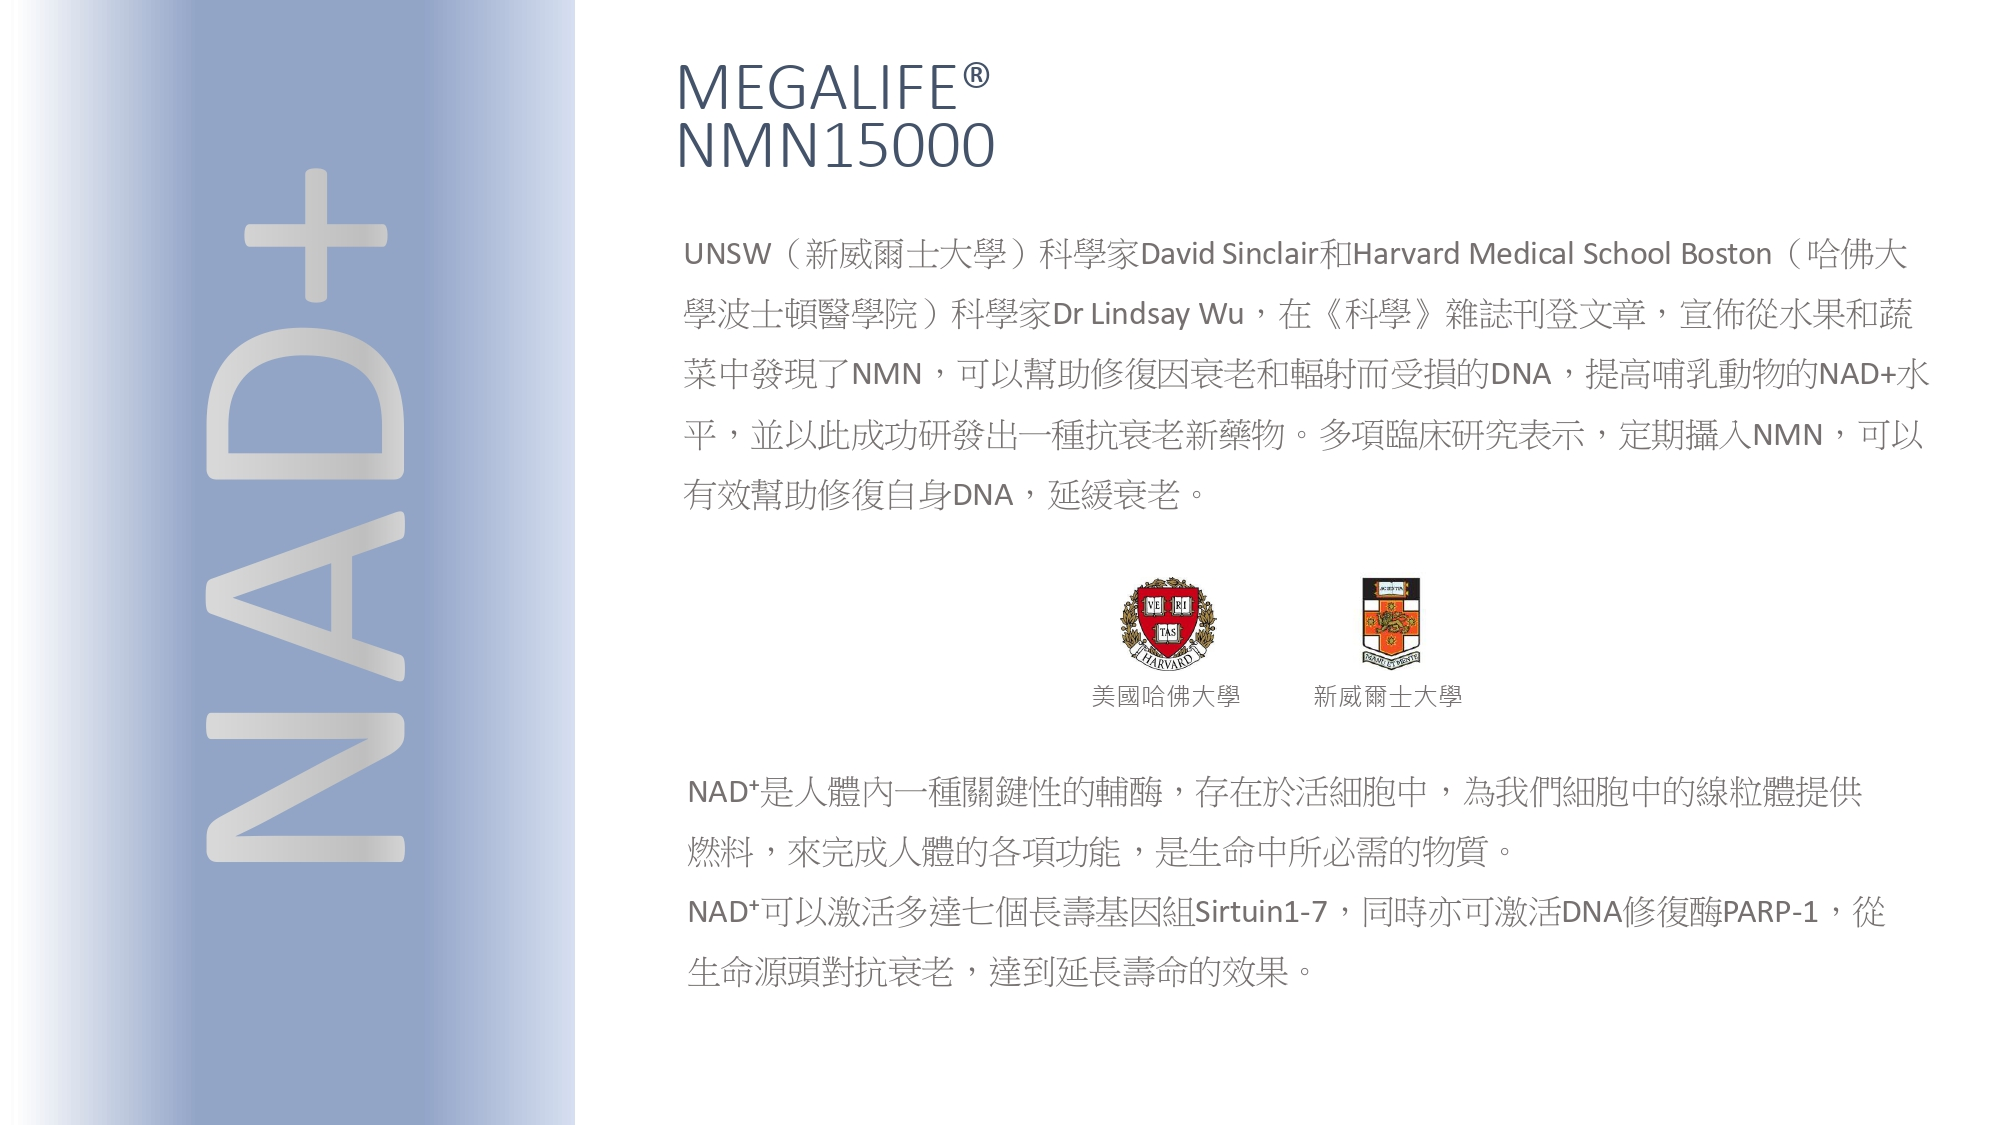 MEGALIFE NMN15000_page-0004